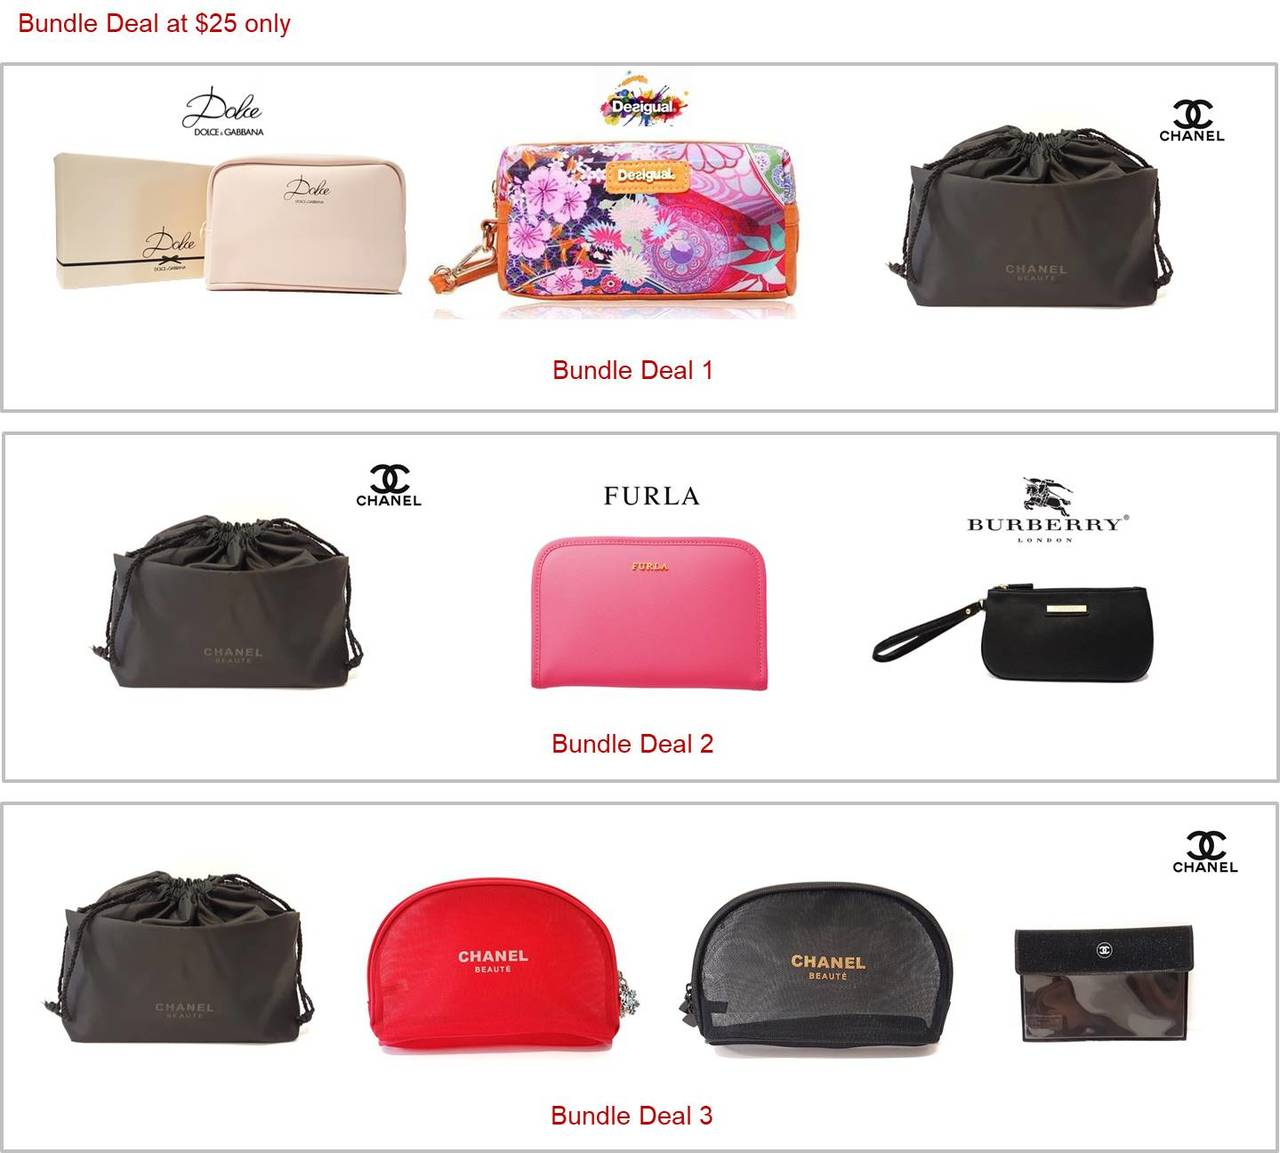 9adc43b3109c Please visit the following link to purchase Miu Miu Red Petite Pouchette  https   www.qoo10.sg g 629981901